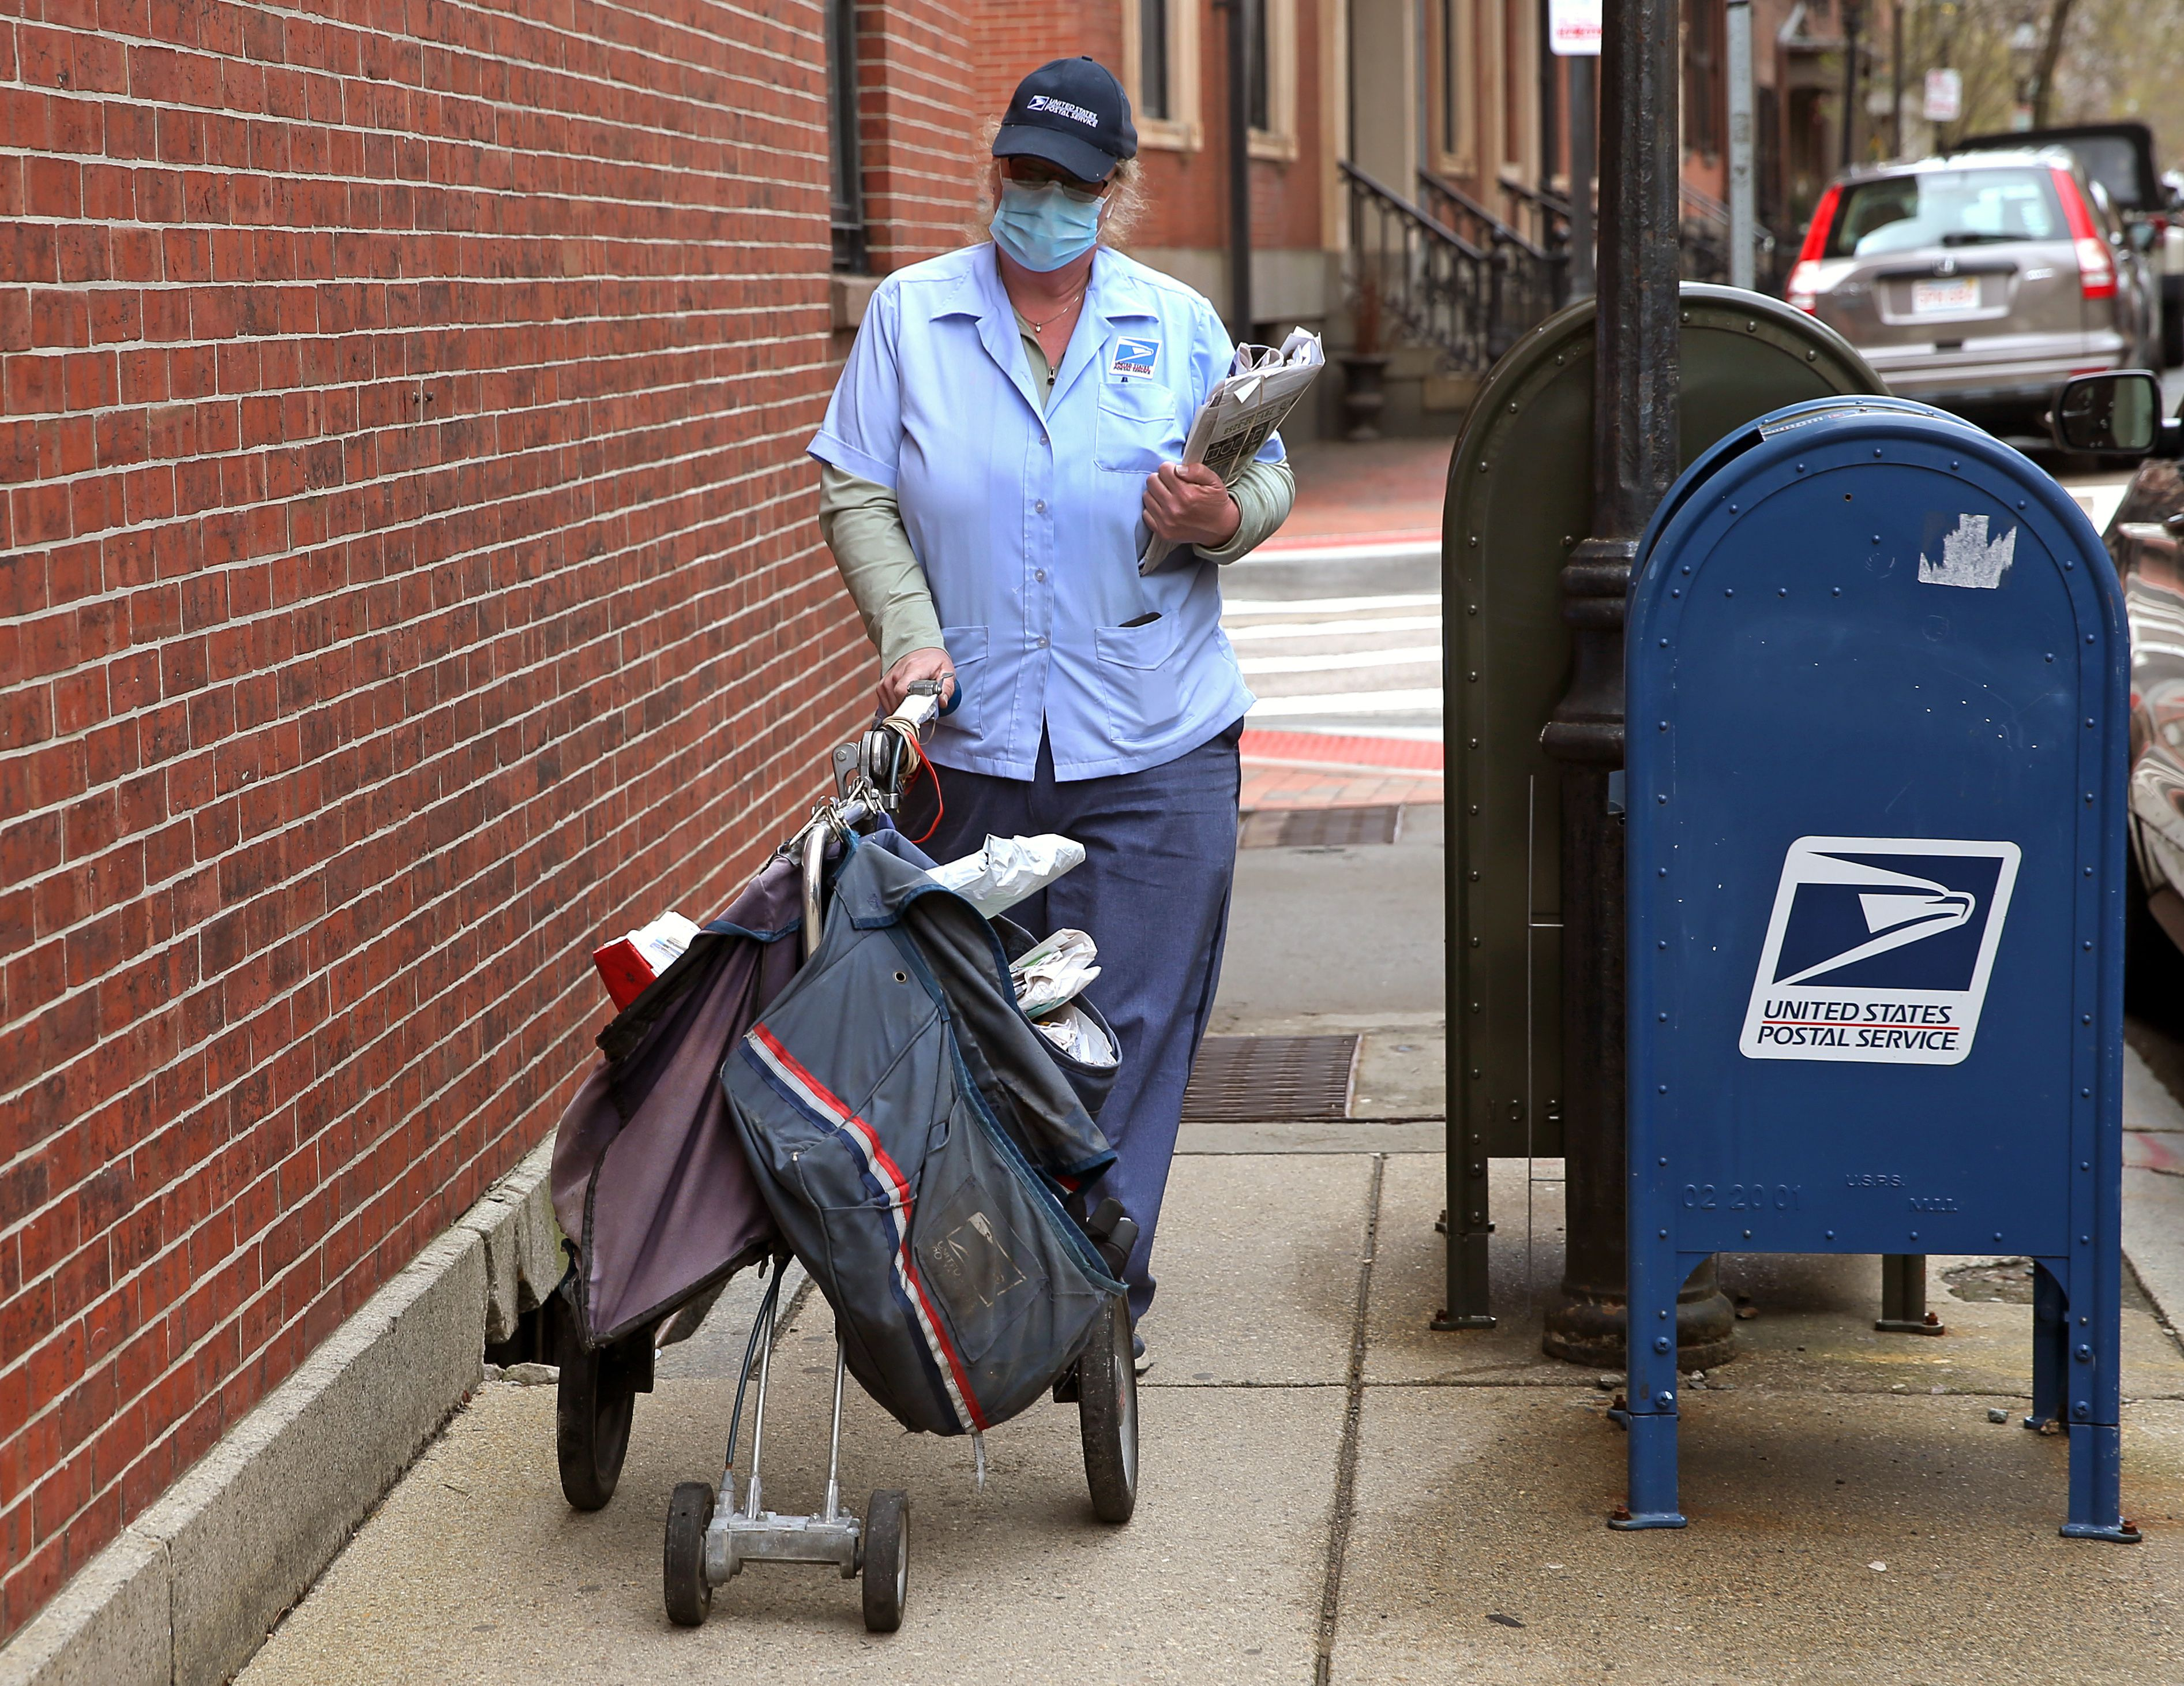 More Us Postal Service Employees Test Positive For Covid 19